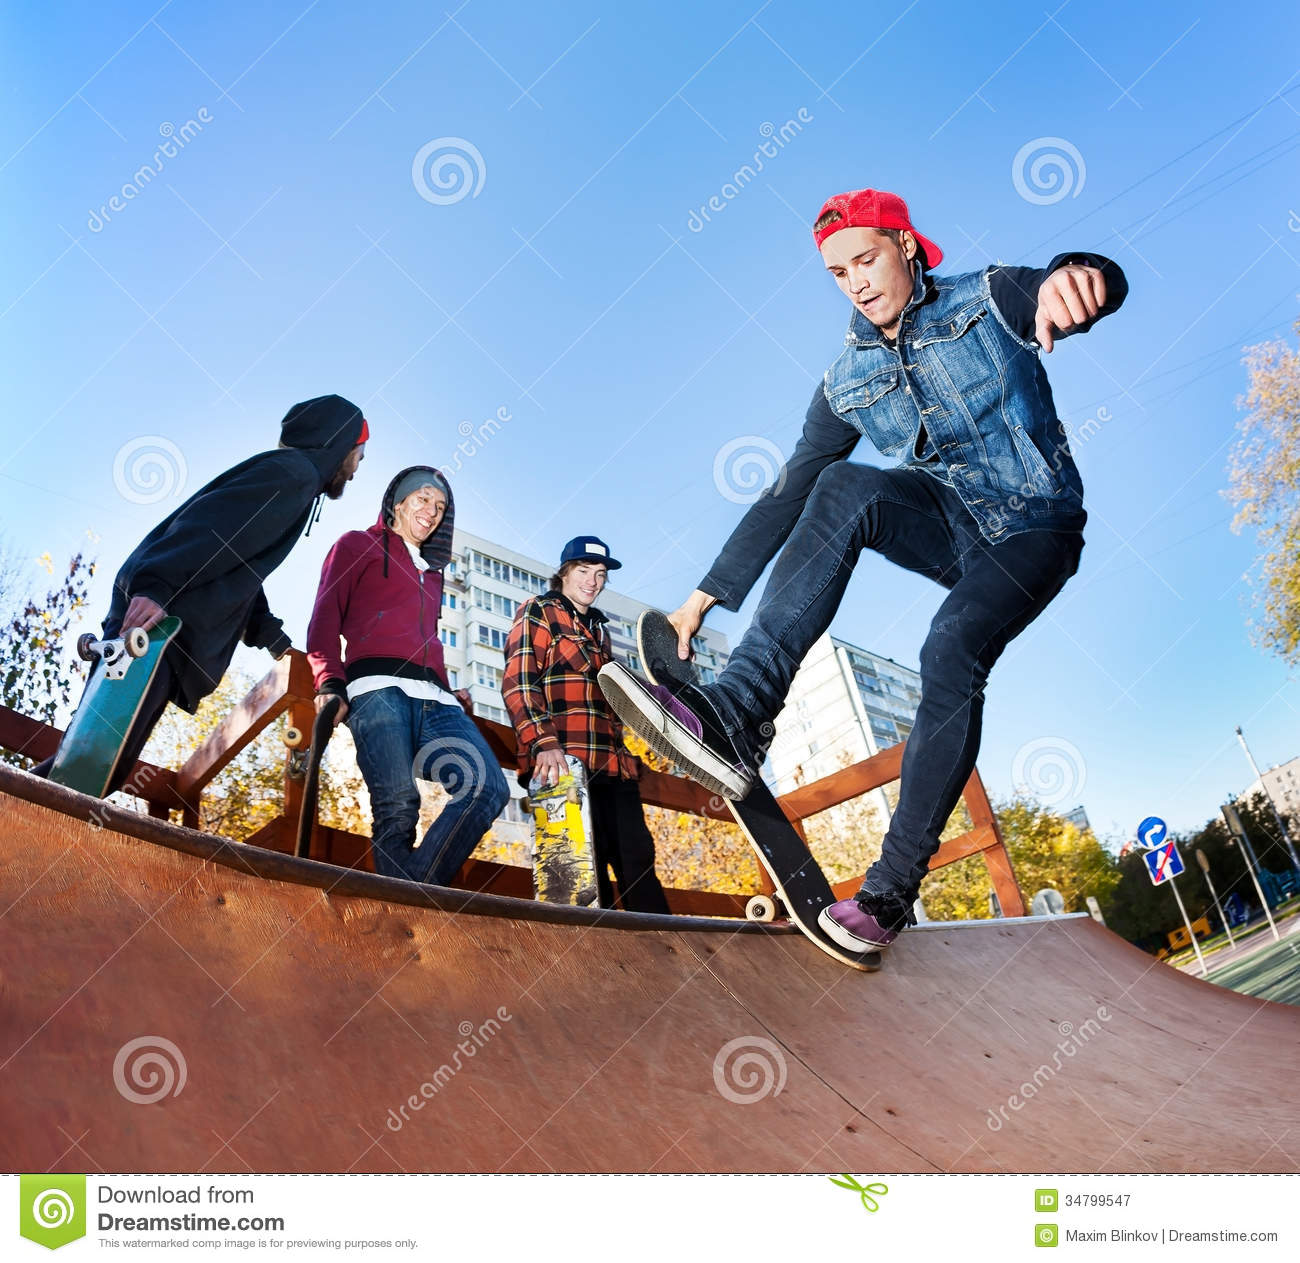 skateboarder in skatepark royalty free stock photography. Black Bedroom Furniture Sets. Home Design Ideas